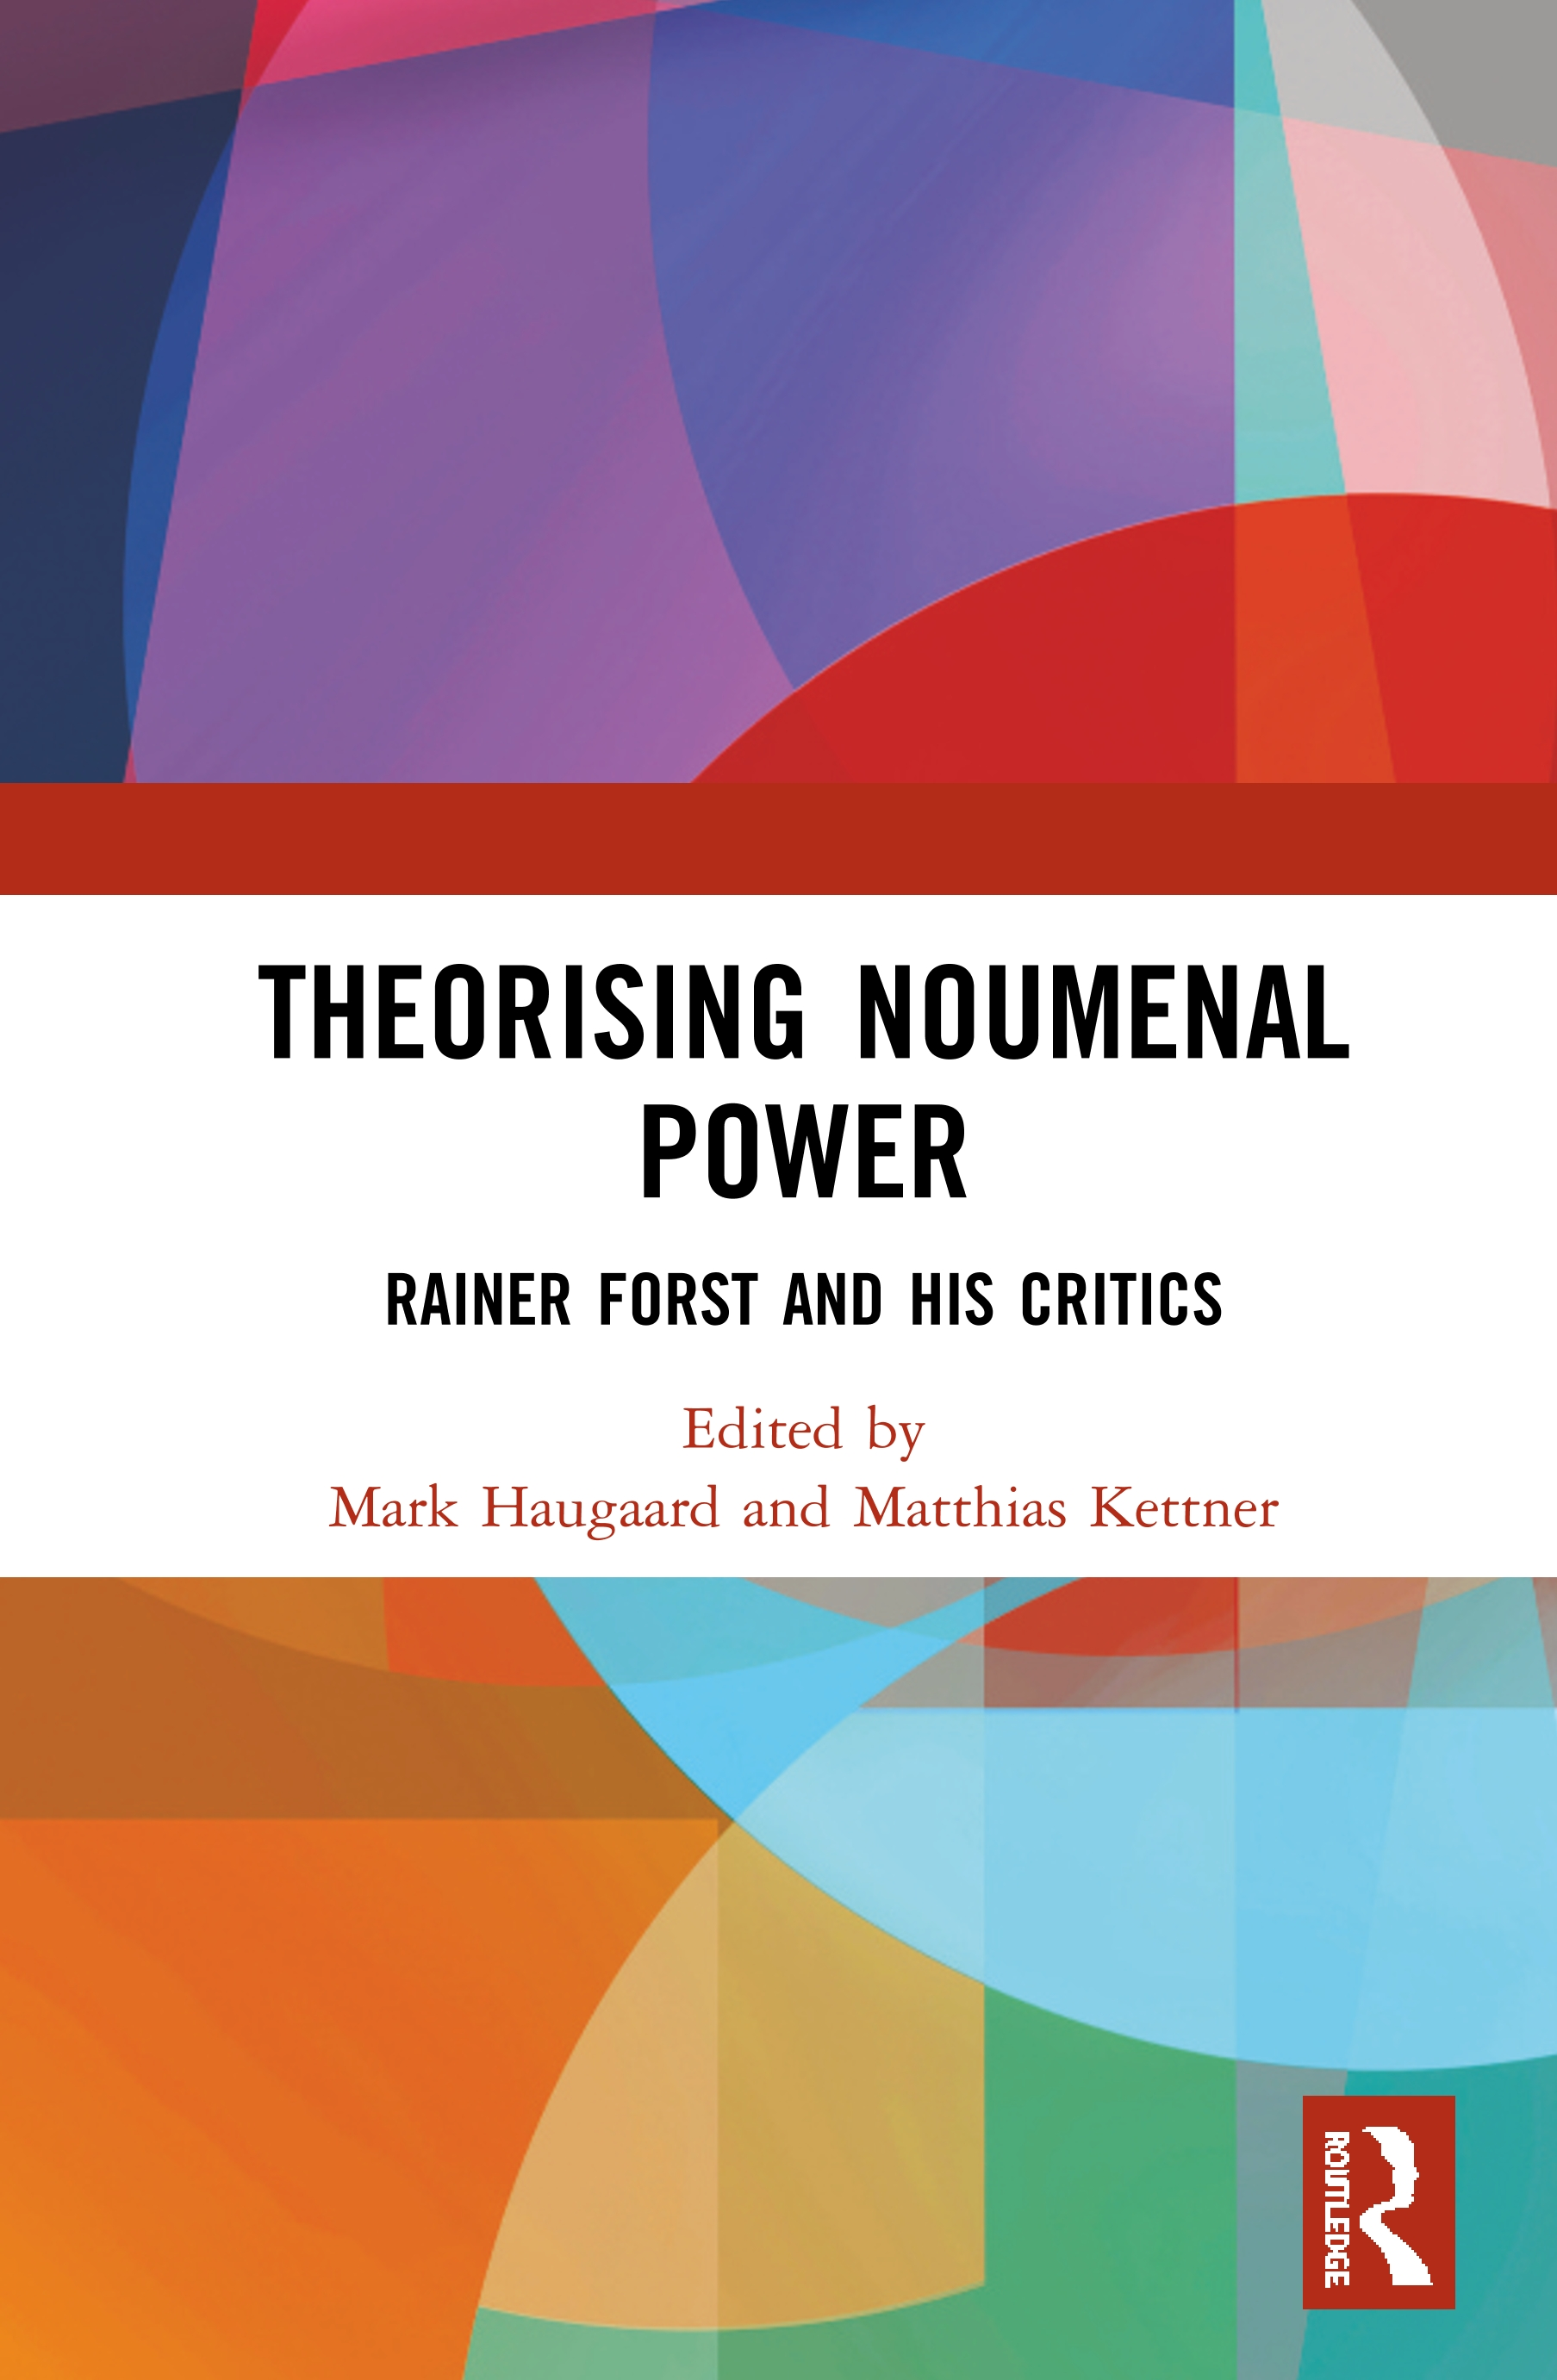 Theorising Noumenal Power: Rainer Forst and his Critics book cover